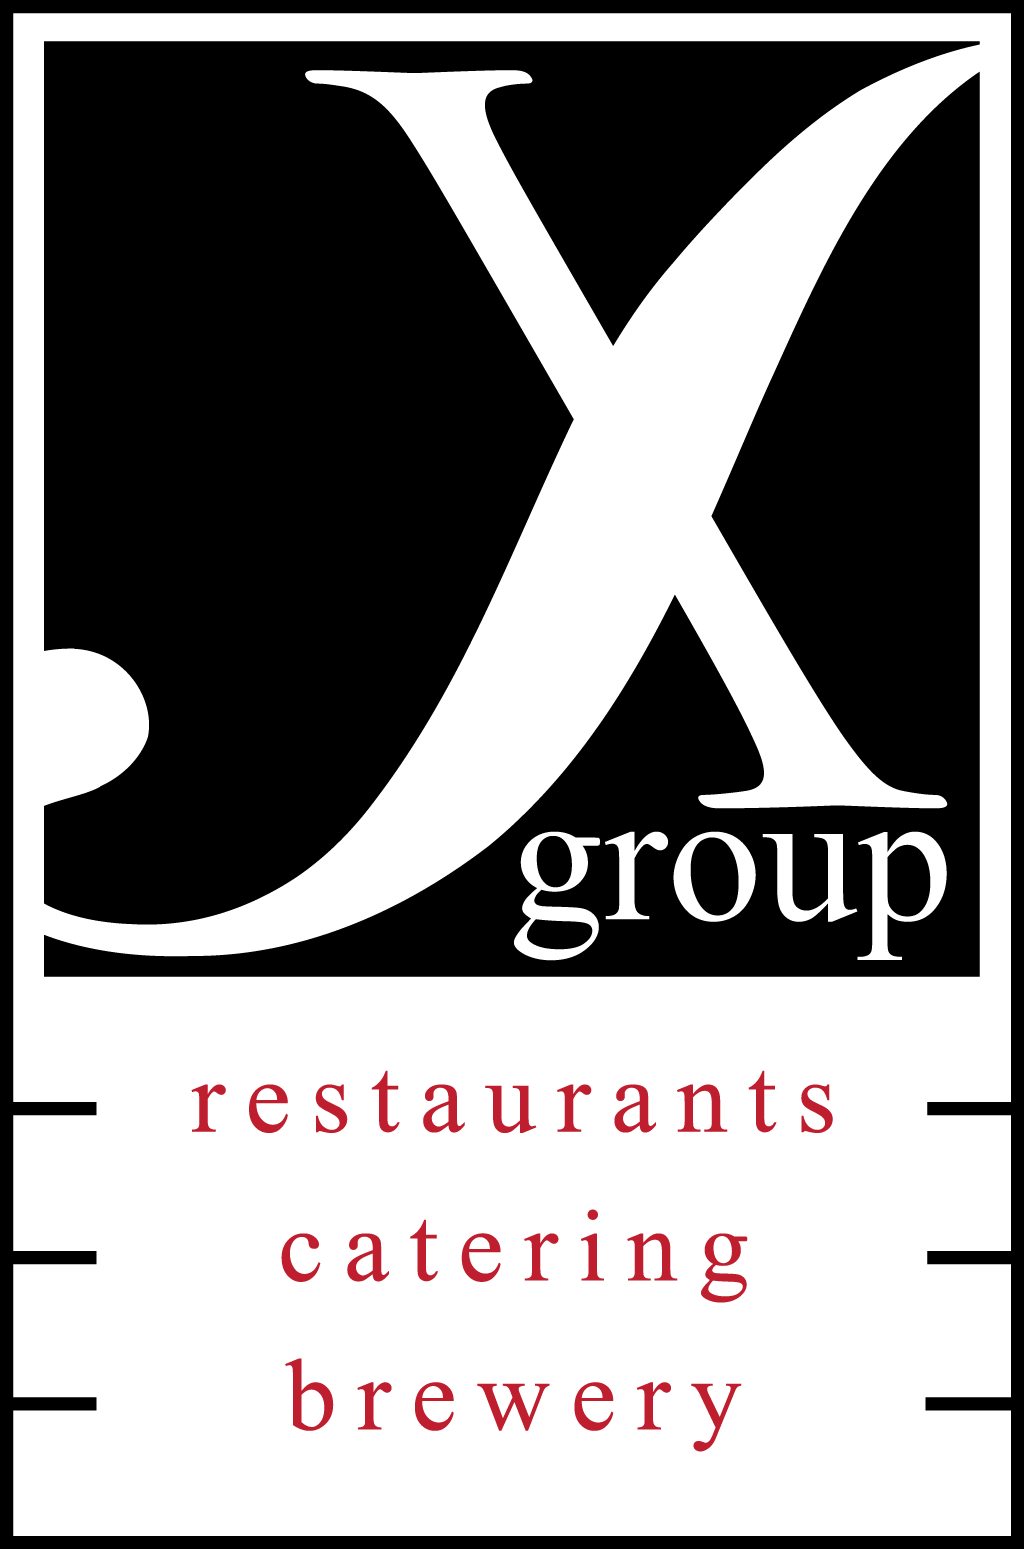 X Group Restaurants, Catering & Brewery